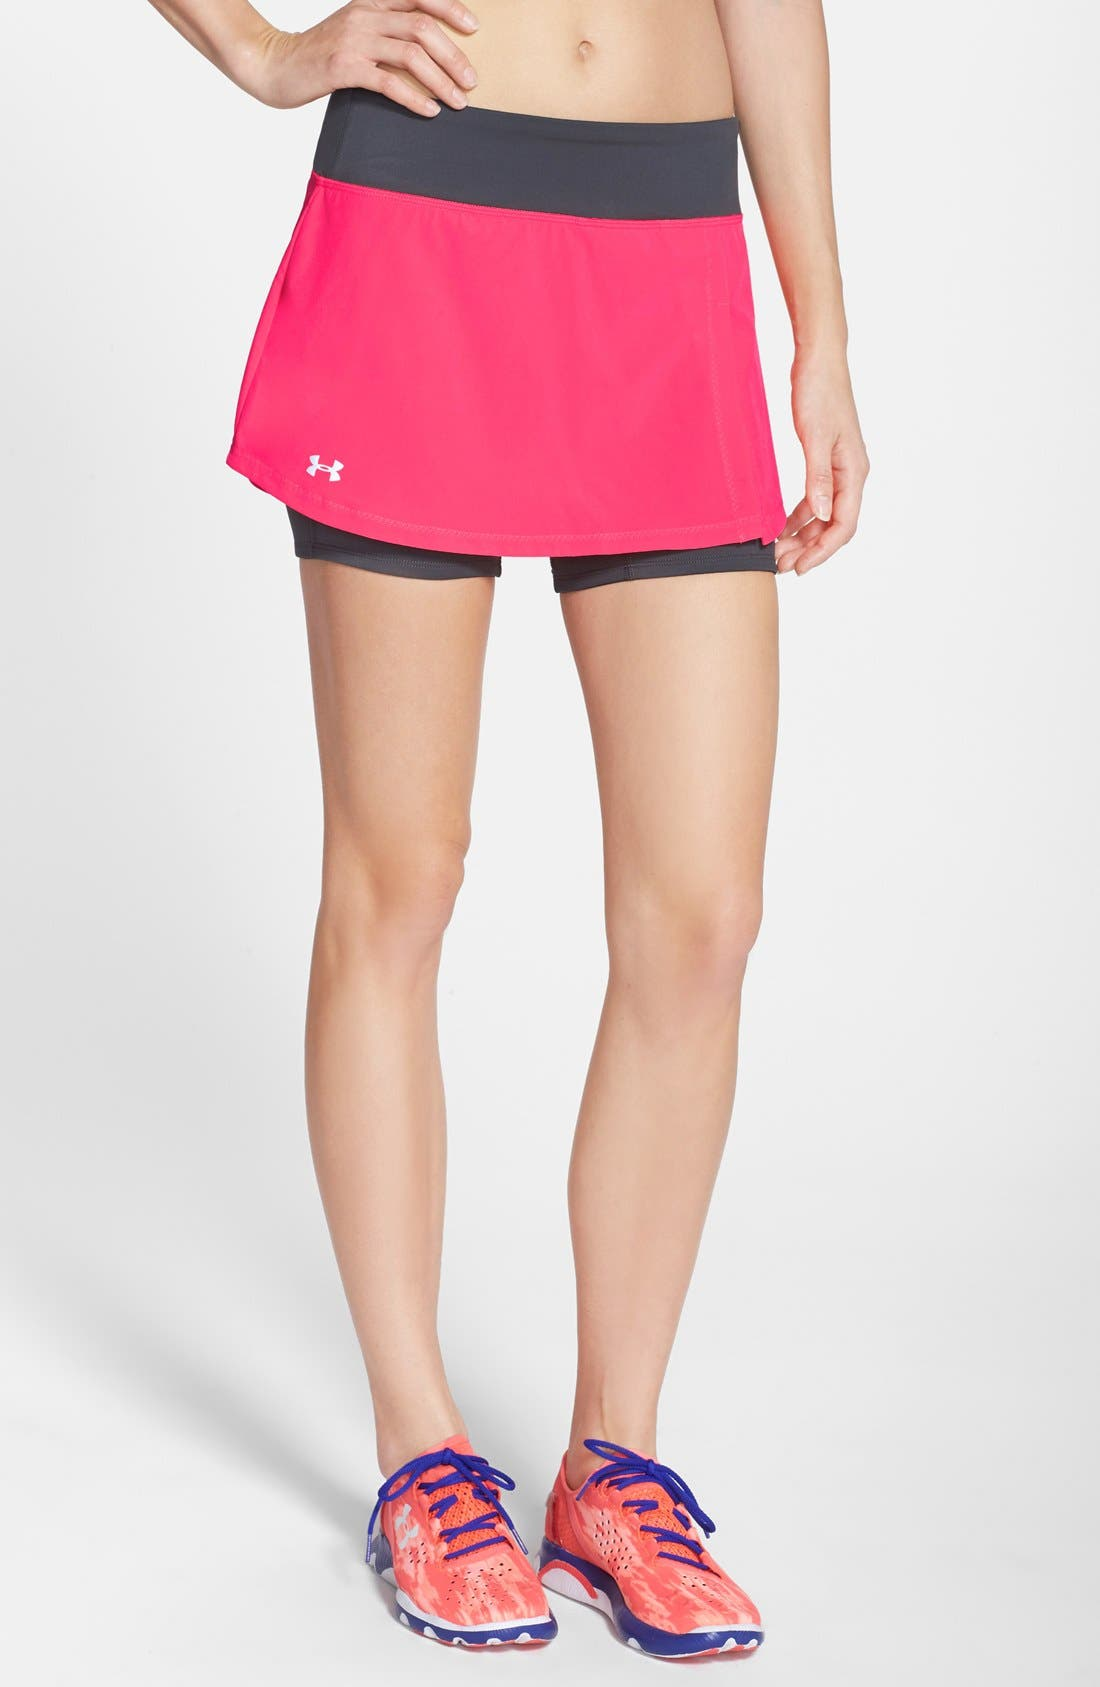 Alternate Image 1 Selected - Under Armour 'Get Set Go' Skort